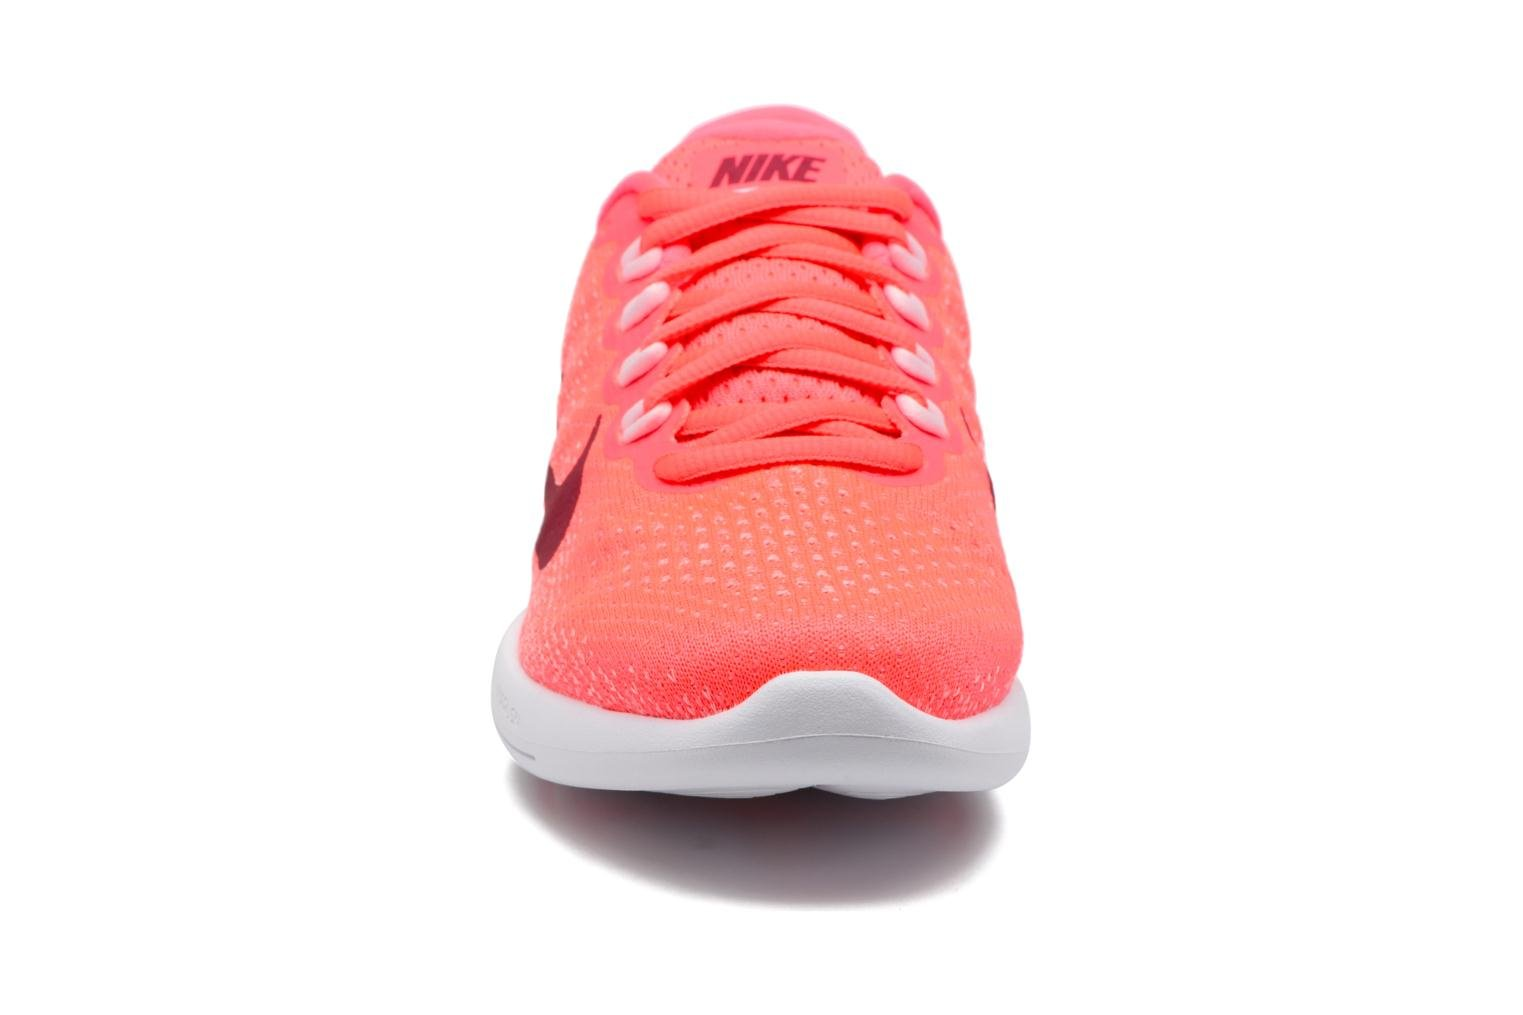 Wmns Nike Lunarglide 9 Hot Punch/Noble Red-Arctic Pink-White